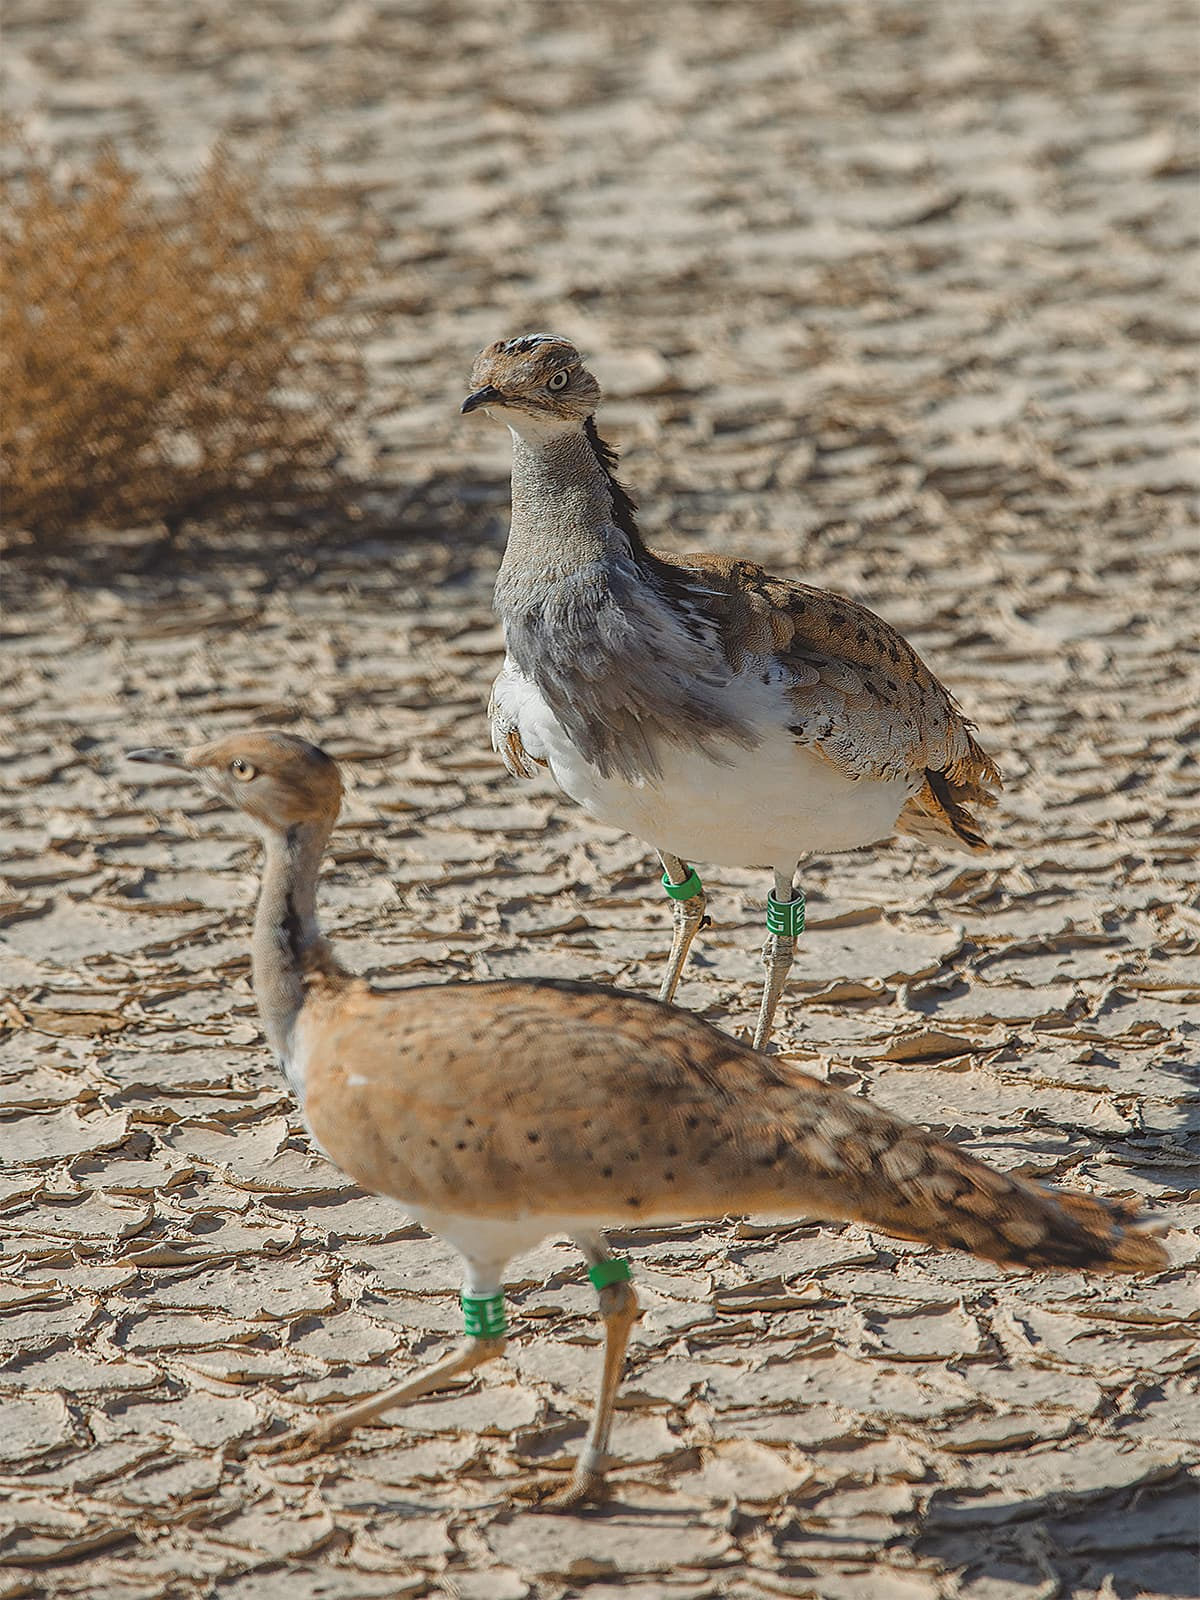 Green tags are used to identify houbara bustards bred in captivity | Mohammad Ali, White Star